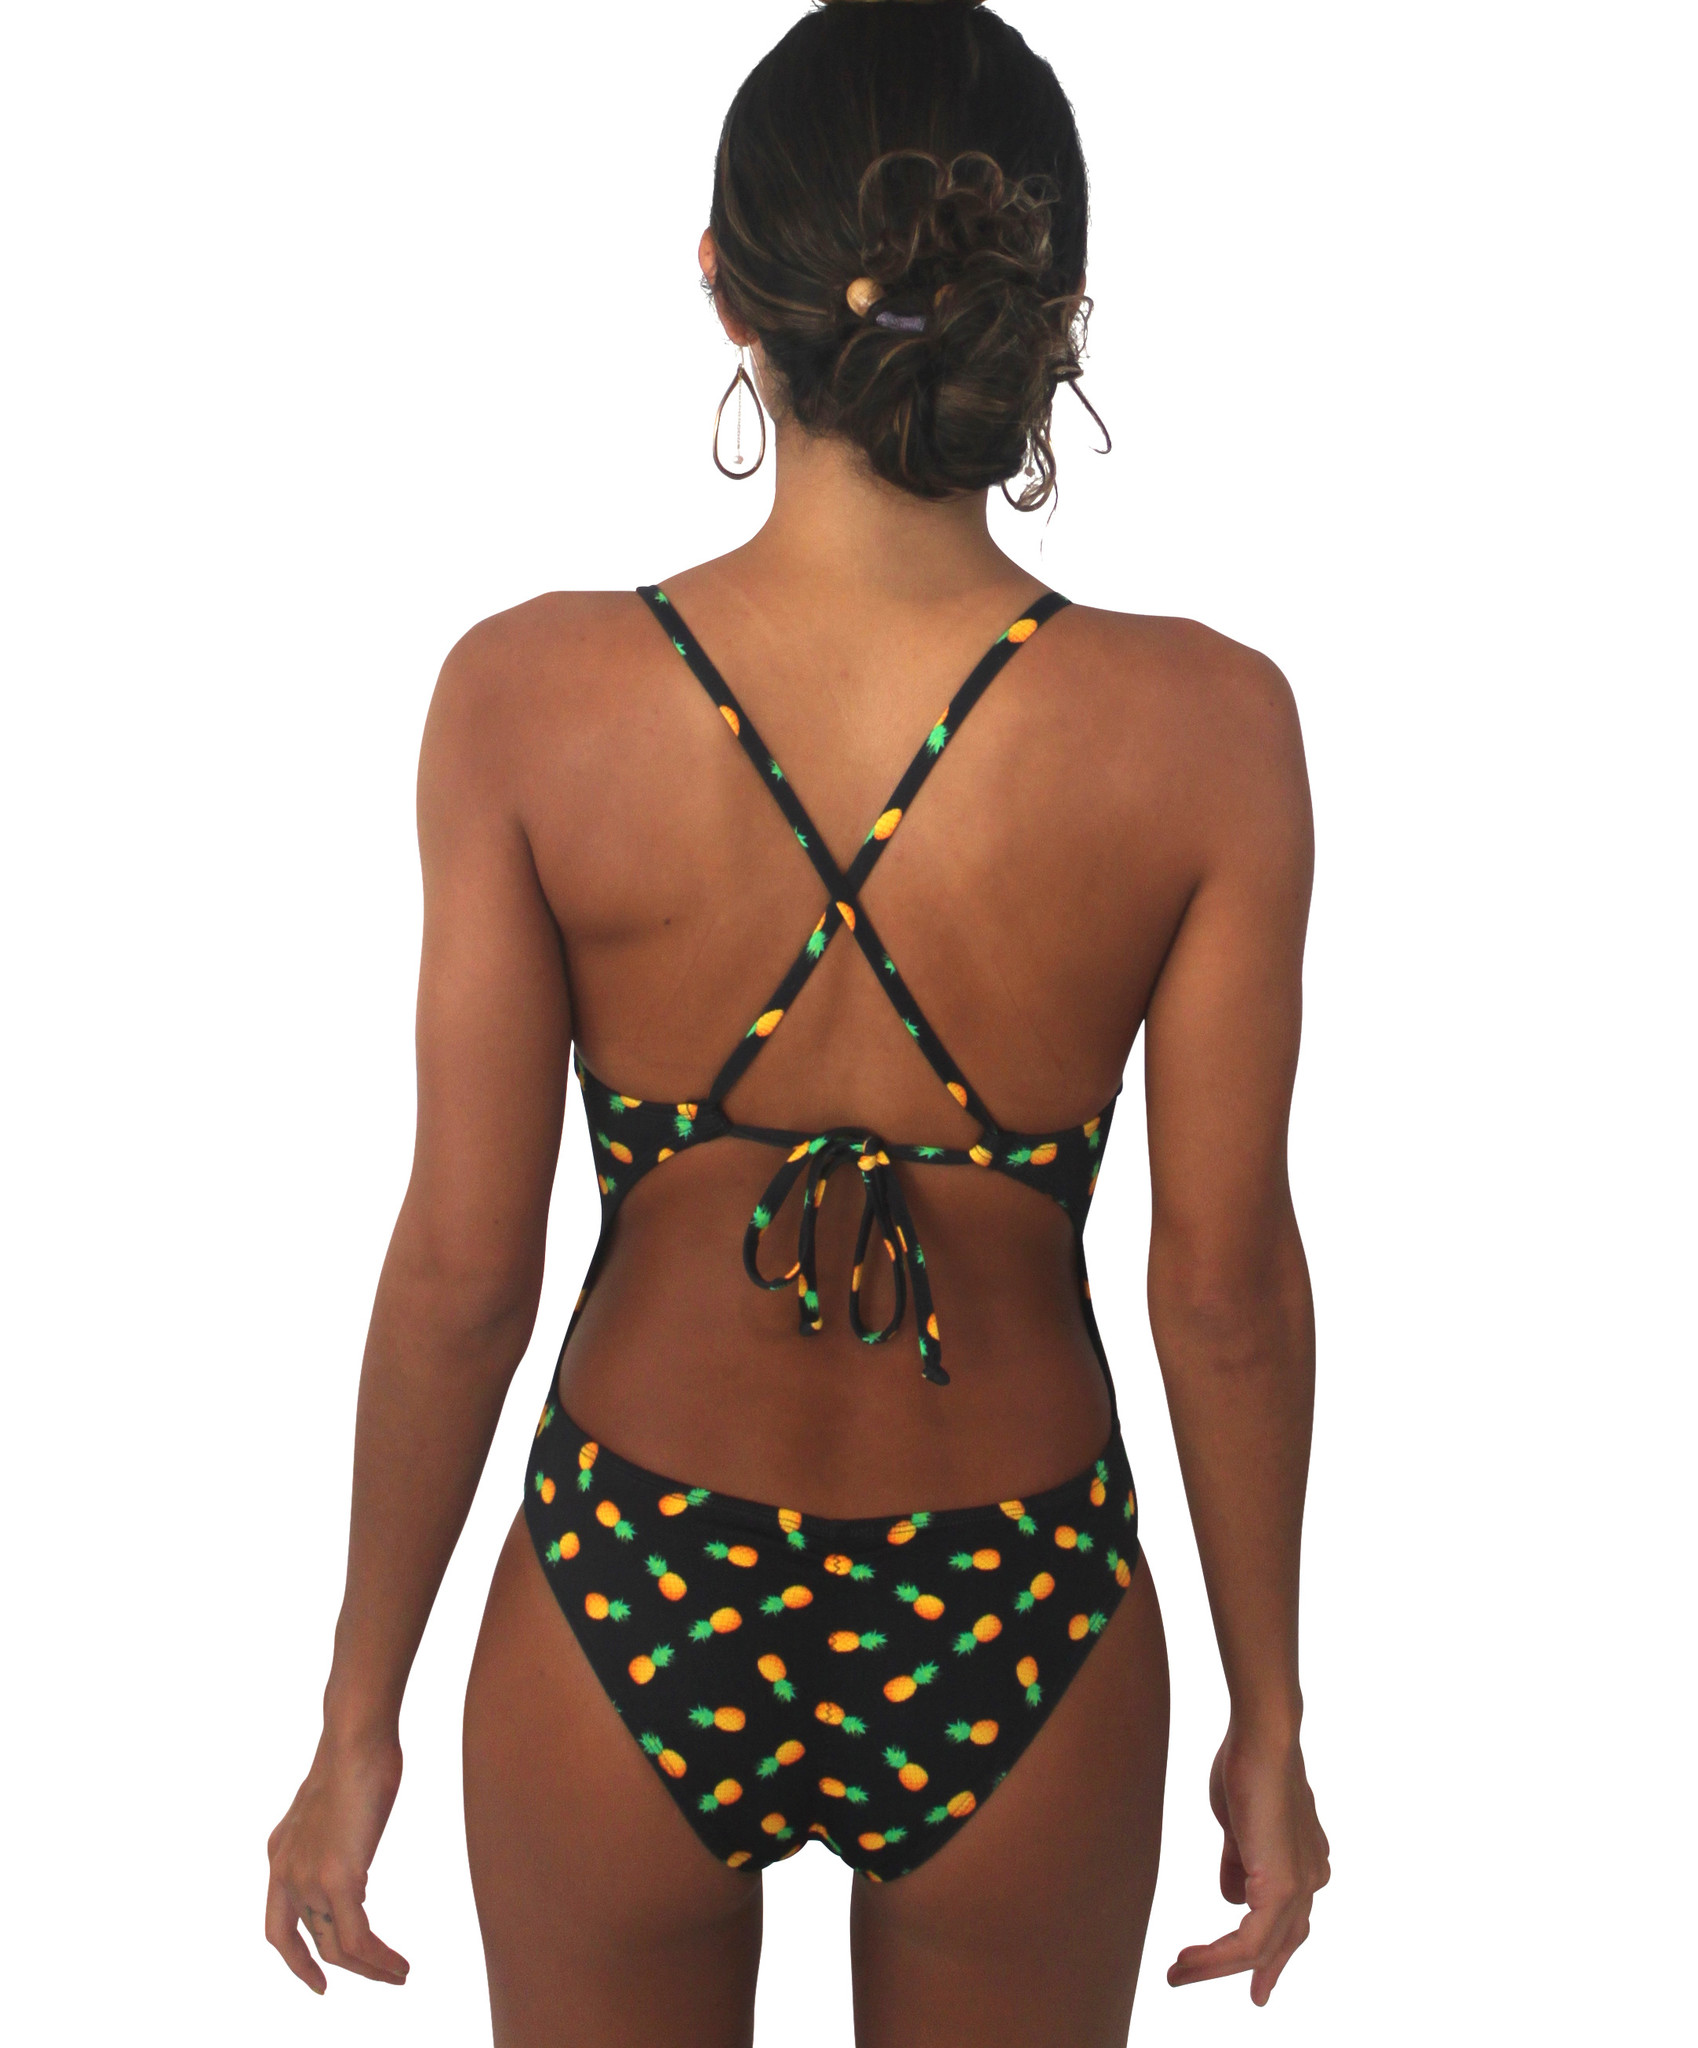 Pualani Sport One Piece Pineapple